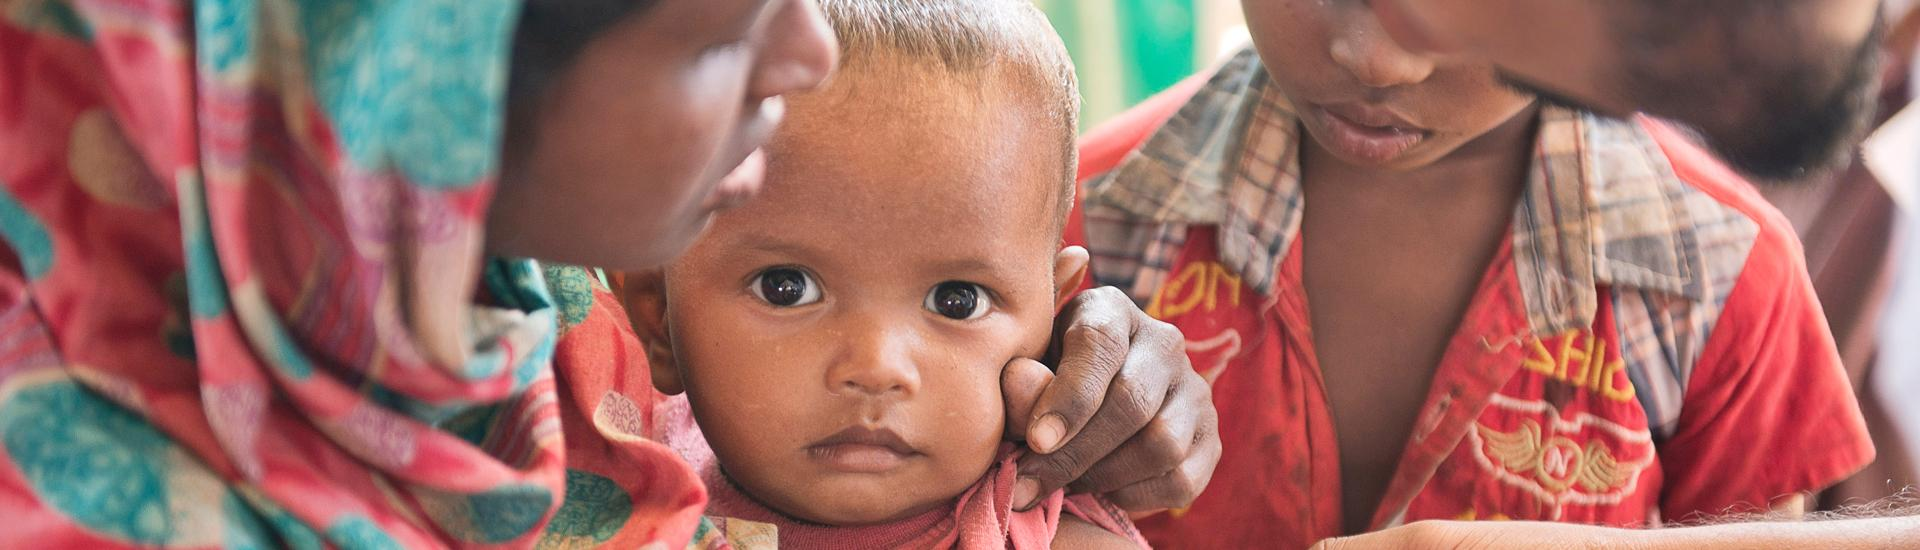 Bangladesh, Myanmar, Population, Movement, Kutupalong, Hakimpara, Balukhali, IFRC, BDRCS, PSS, Shelter, Food, distribution, Red Cross, water, Japan, health, clinic, malnutrition, children, baby